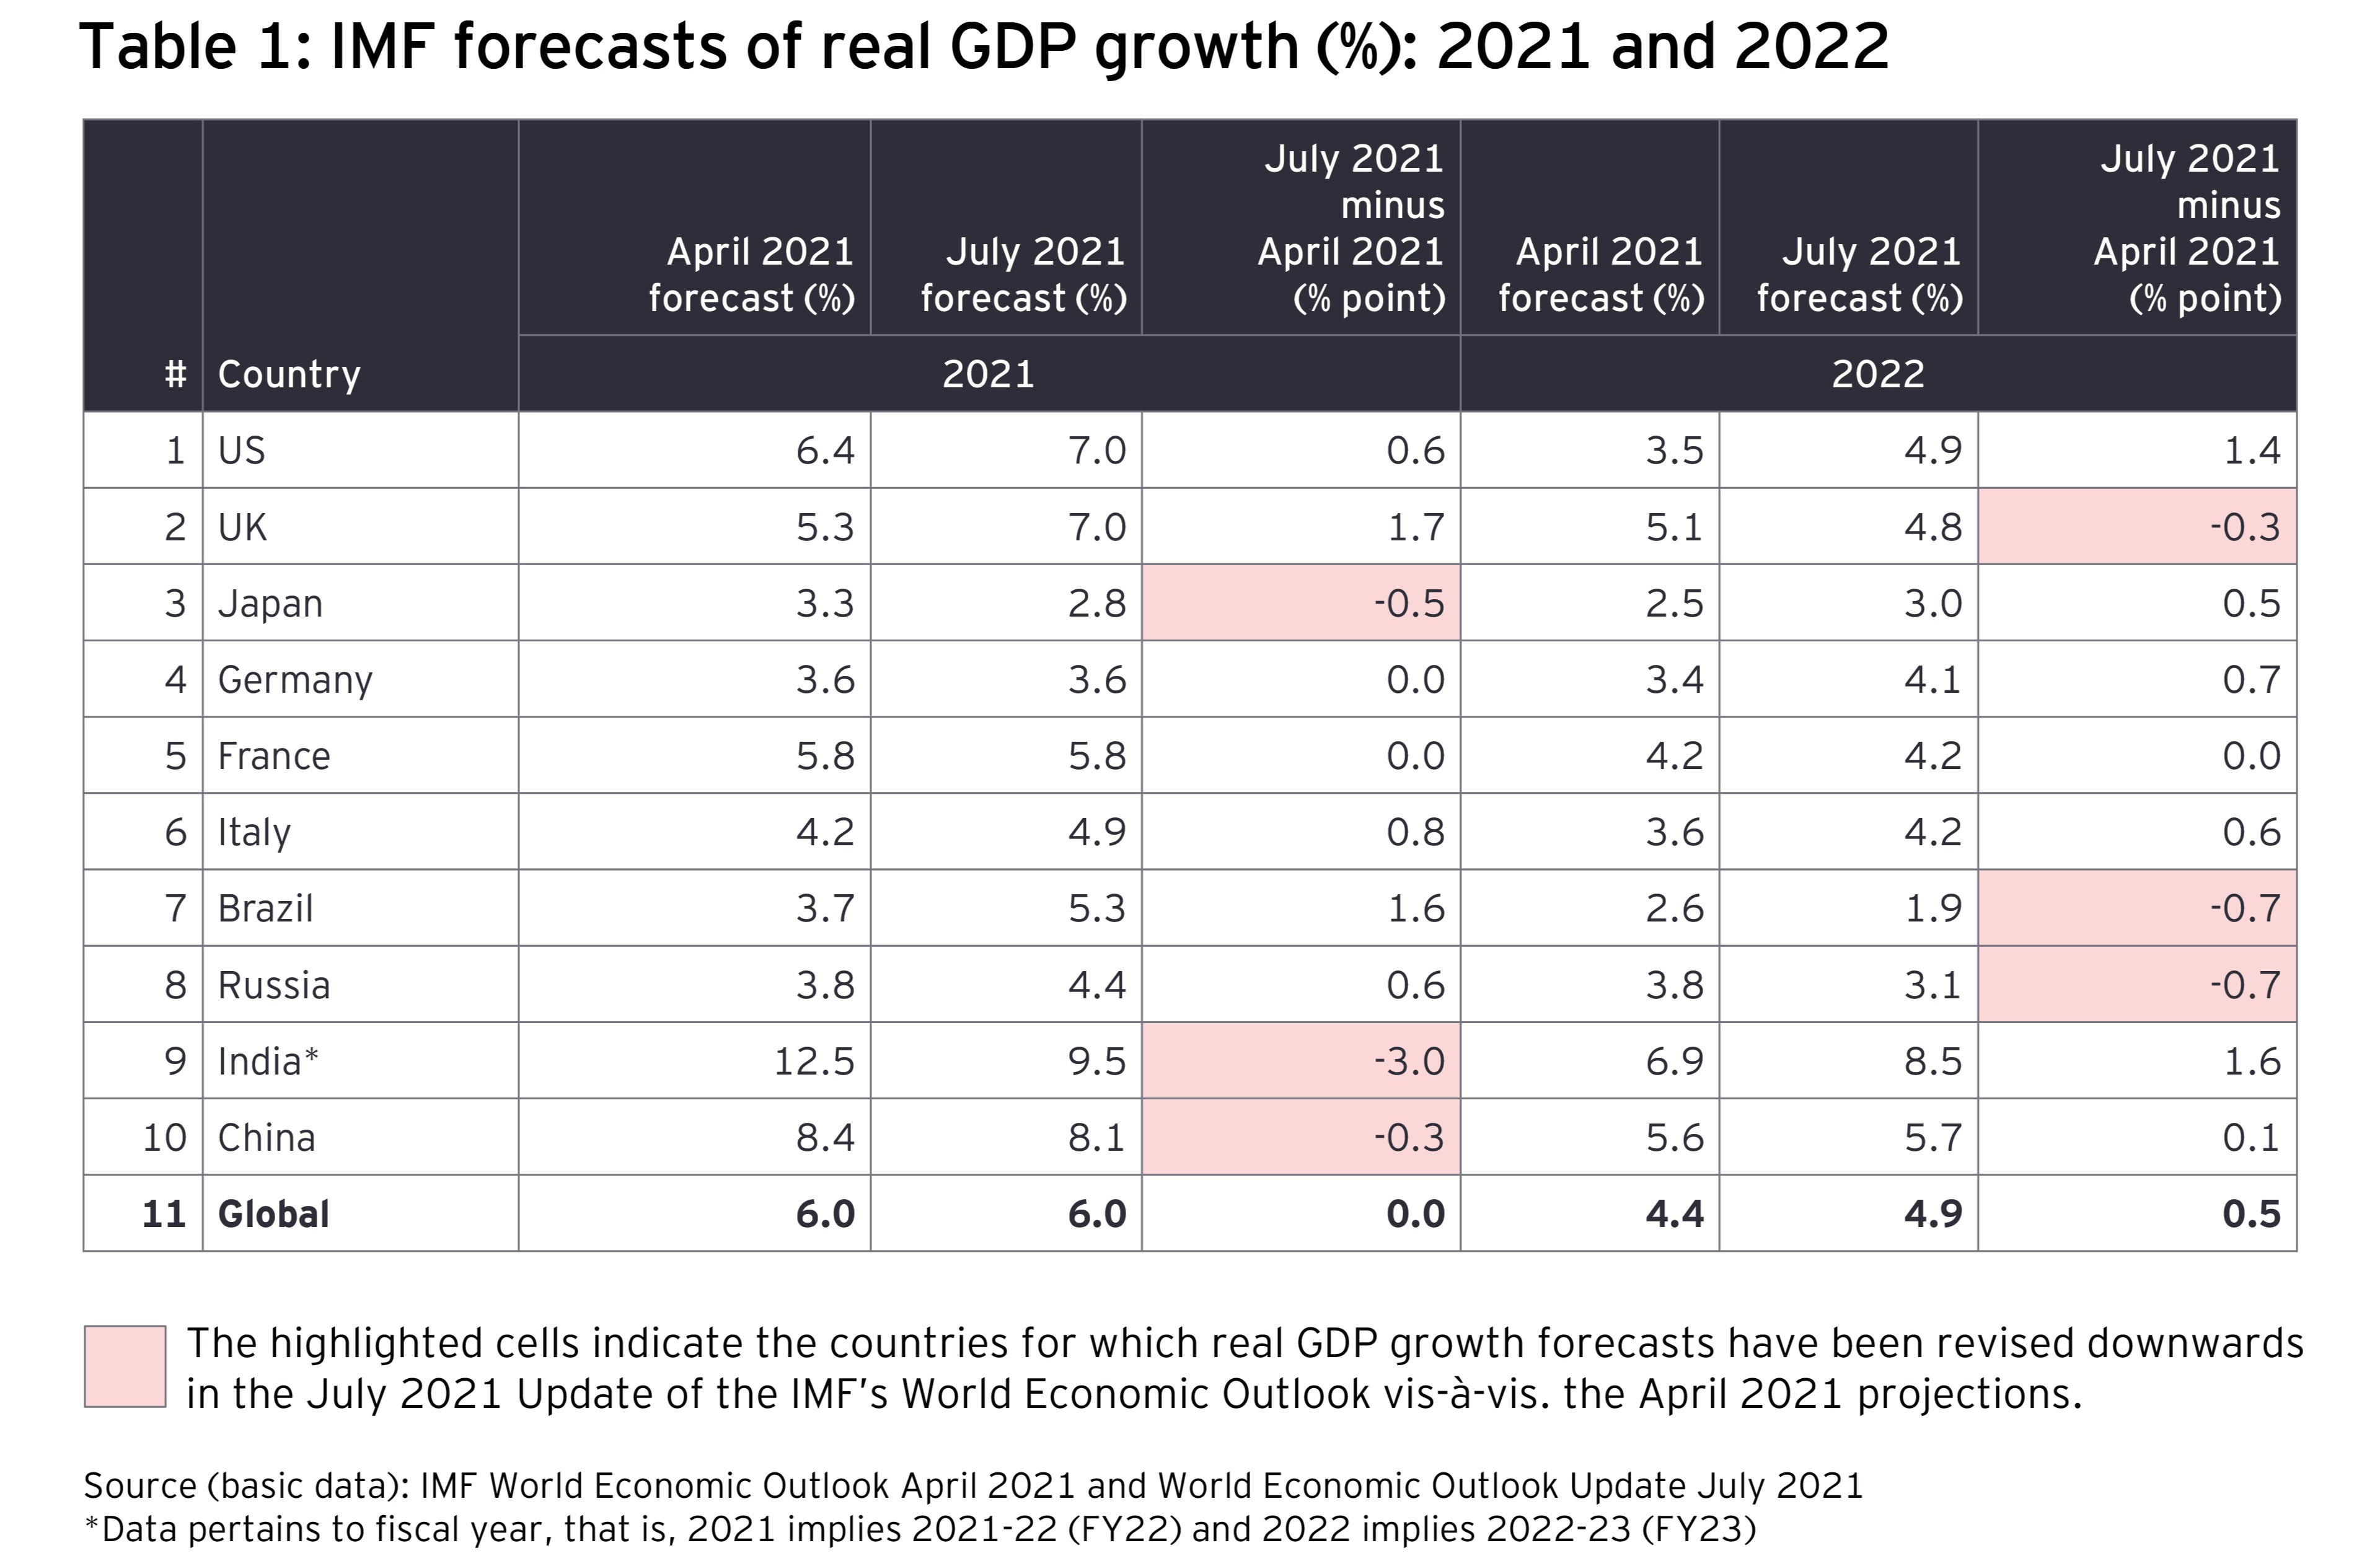 IMF forecasts of real GDP growth (%): 2021 and 2022